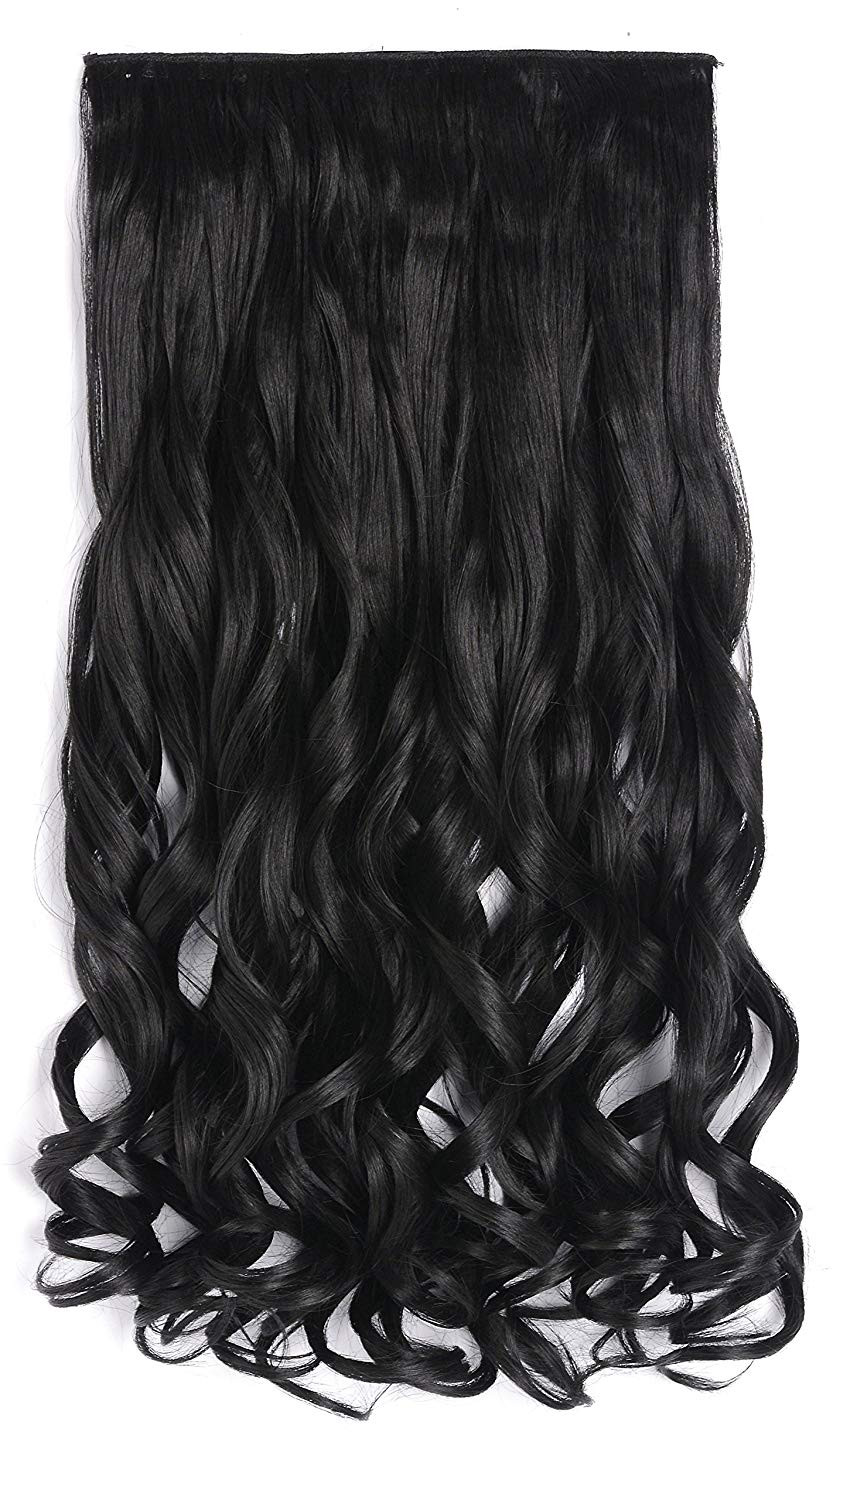 """OneDor 20"""" Curly 3/4 Full Head Synthetic Hair Extensions Clip On/in Hairpieces 140g 5 Clips (1b- Off Black)"""